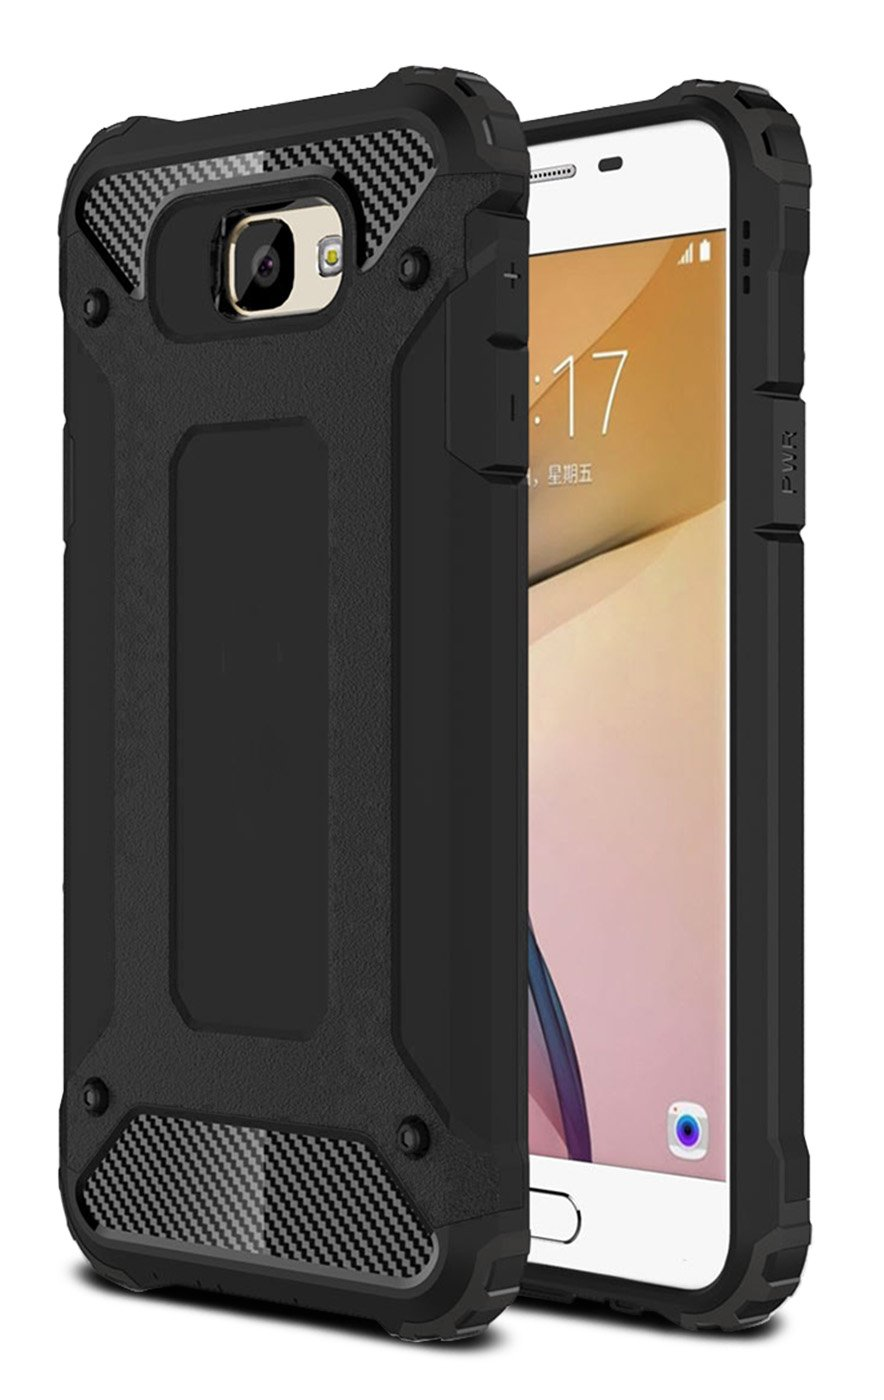 J7 Prime Case, Galaxy On7 2016 Case, J7 2017 Case, Hasting [Drop Protection] Dustproof Dual-layer Armor Hybrid Steel Style Protective Case for Samsung Galaxy J7 (2017) (Black)